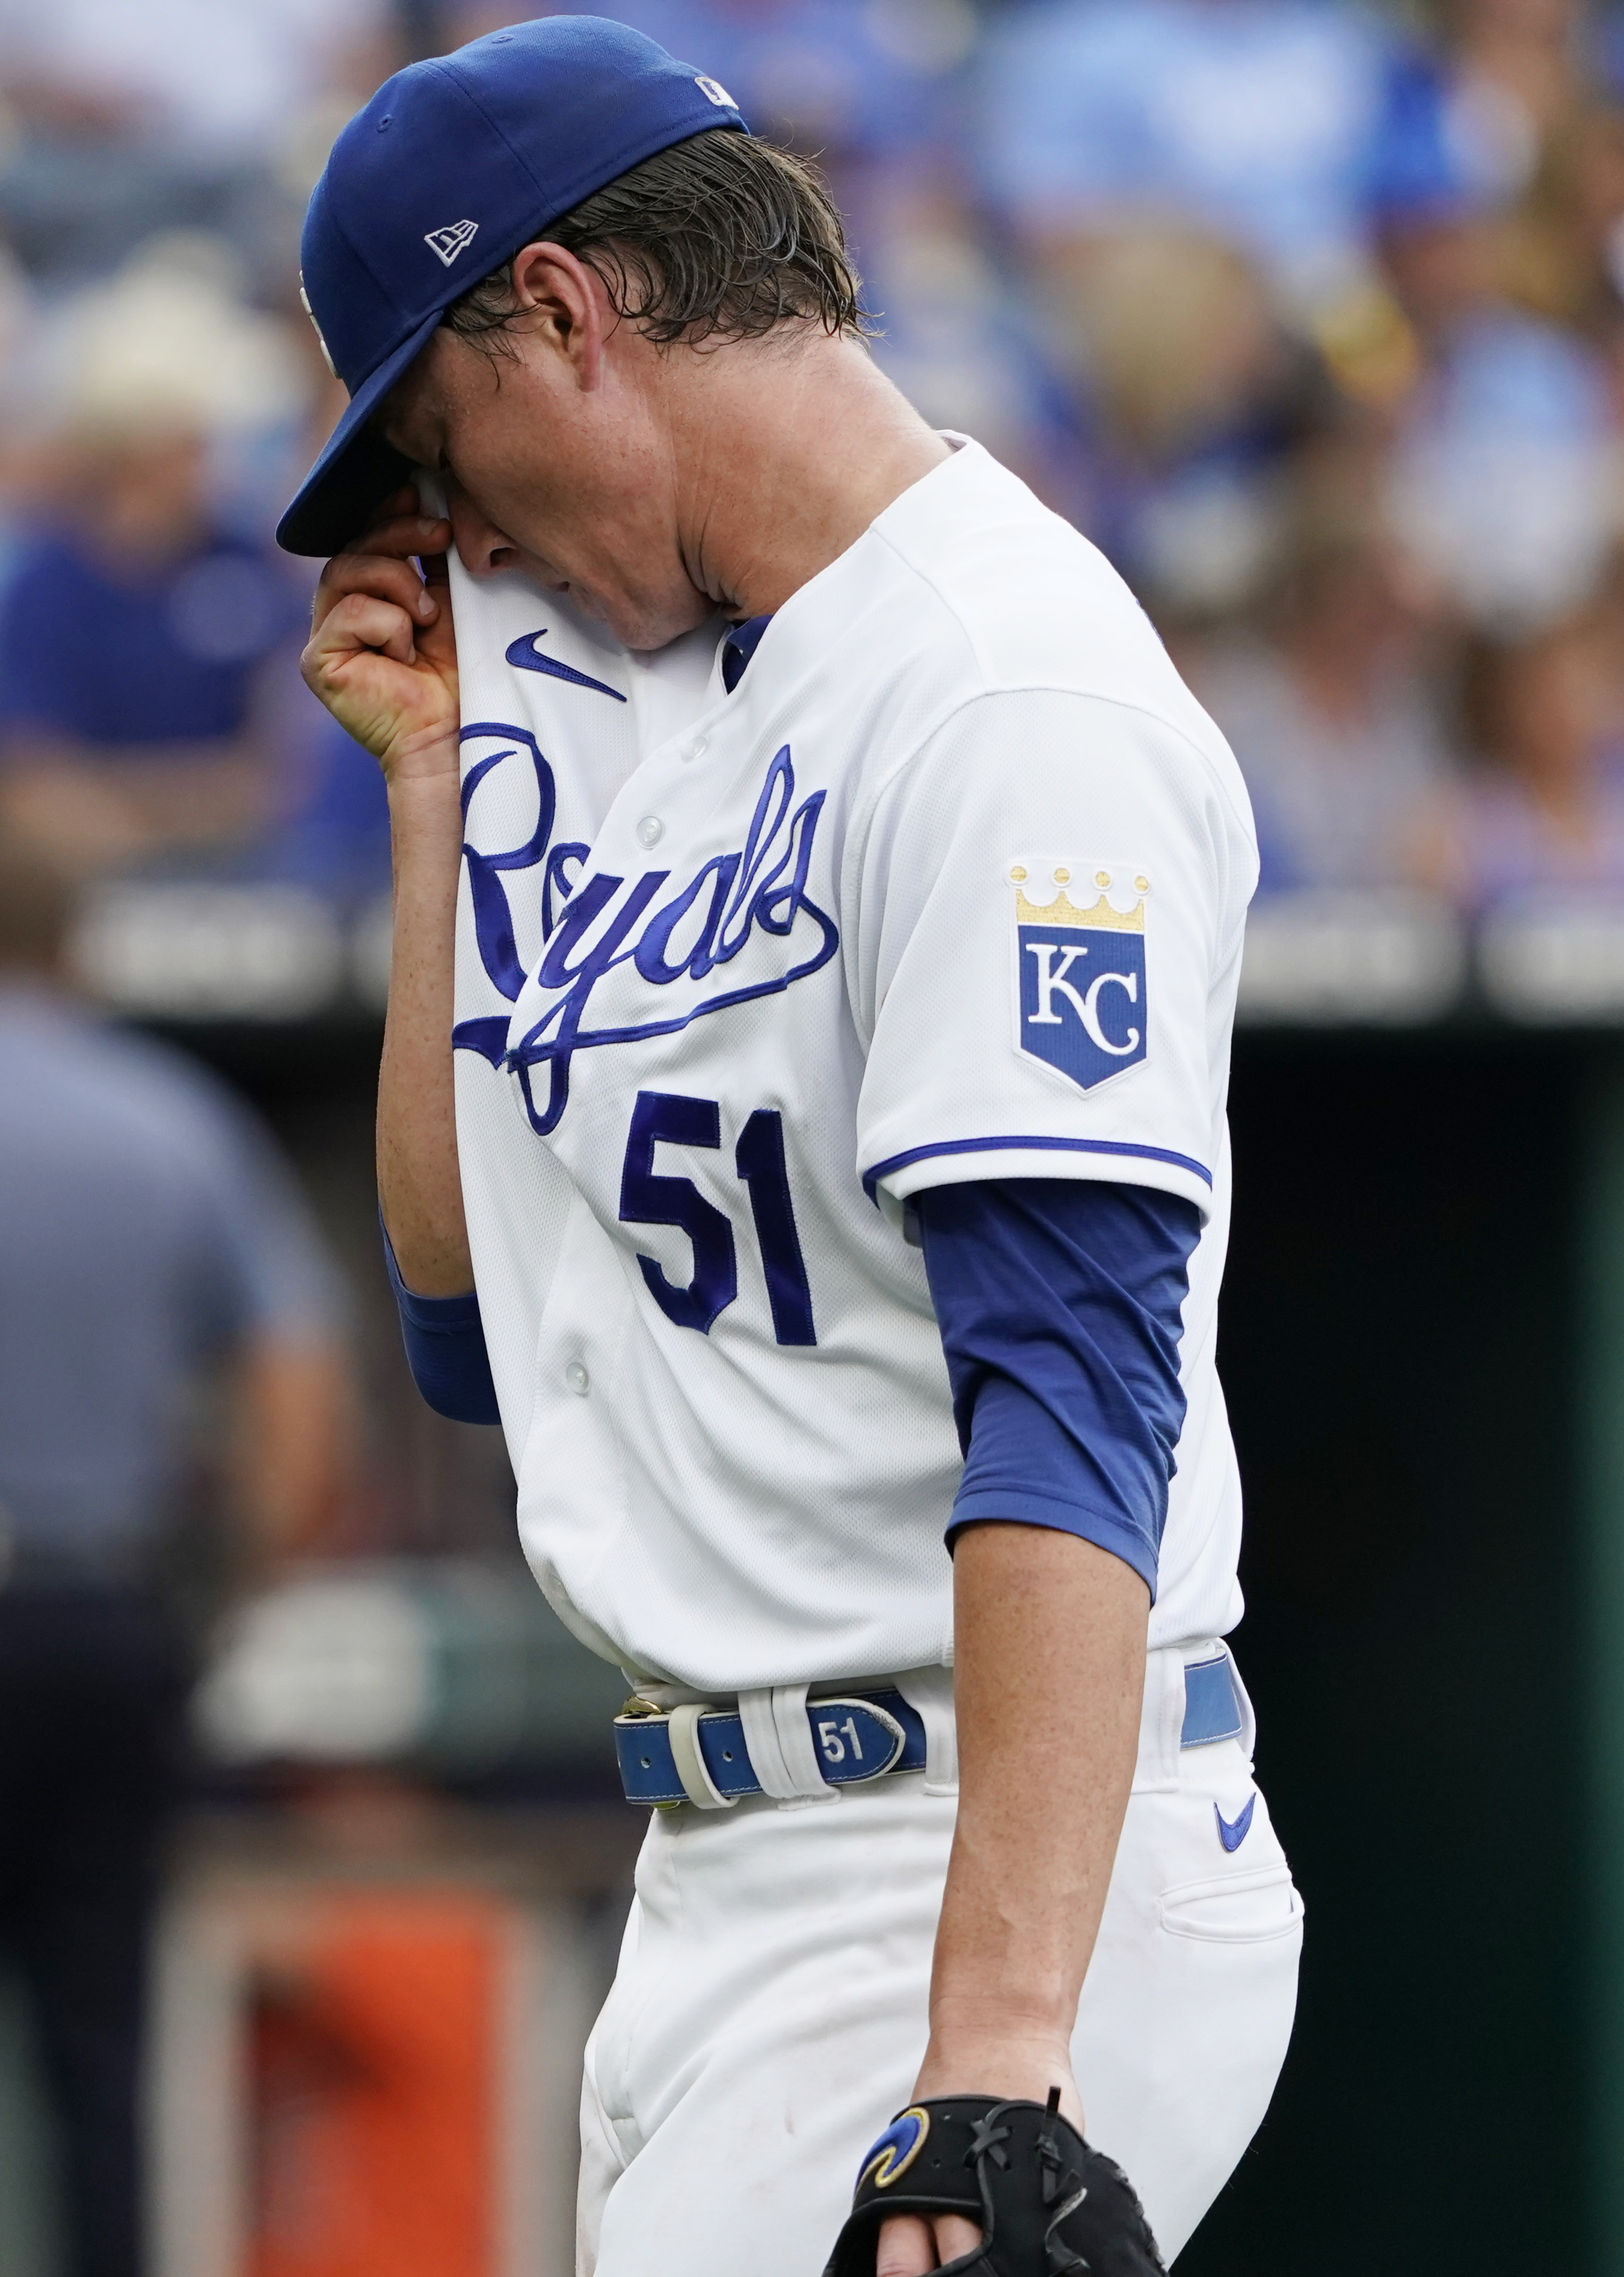 Starting pitcher Brady Singer #51 of the Kansas City Royals leaves a game against the Baltimore Orioles in the third inning at Kauffman Stadium on July 17, 2021 in Kansas City, Missouri.